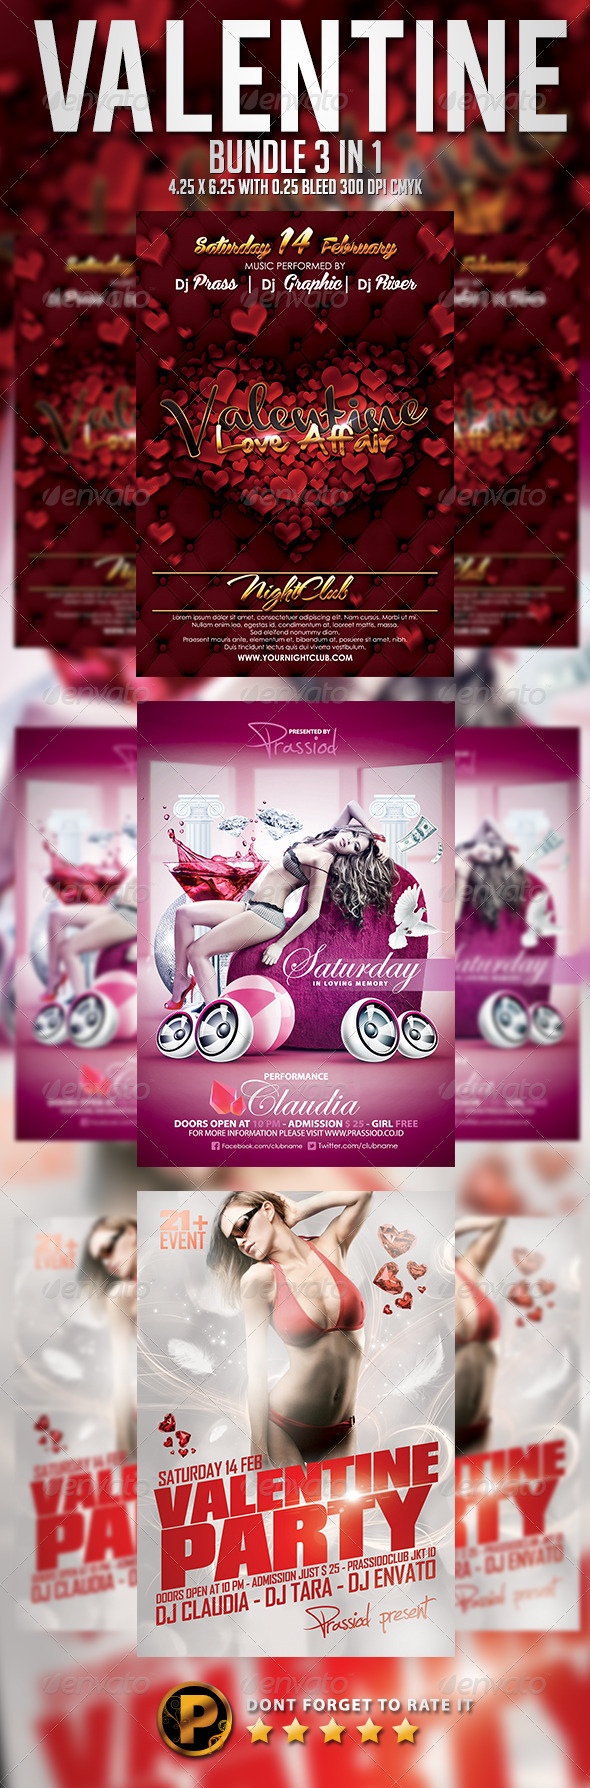 Valentine Flyer Template - Bundle 3 In 1